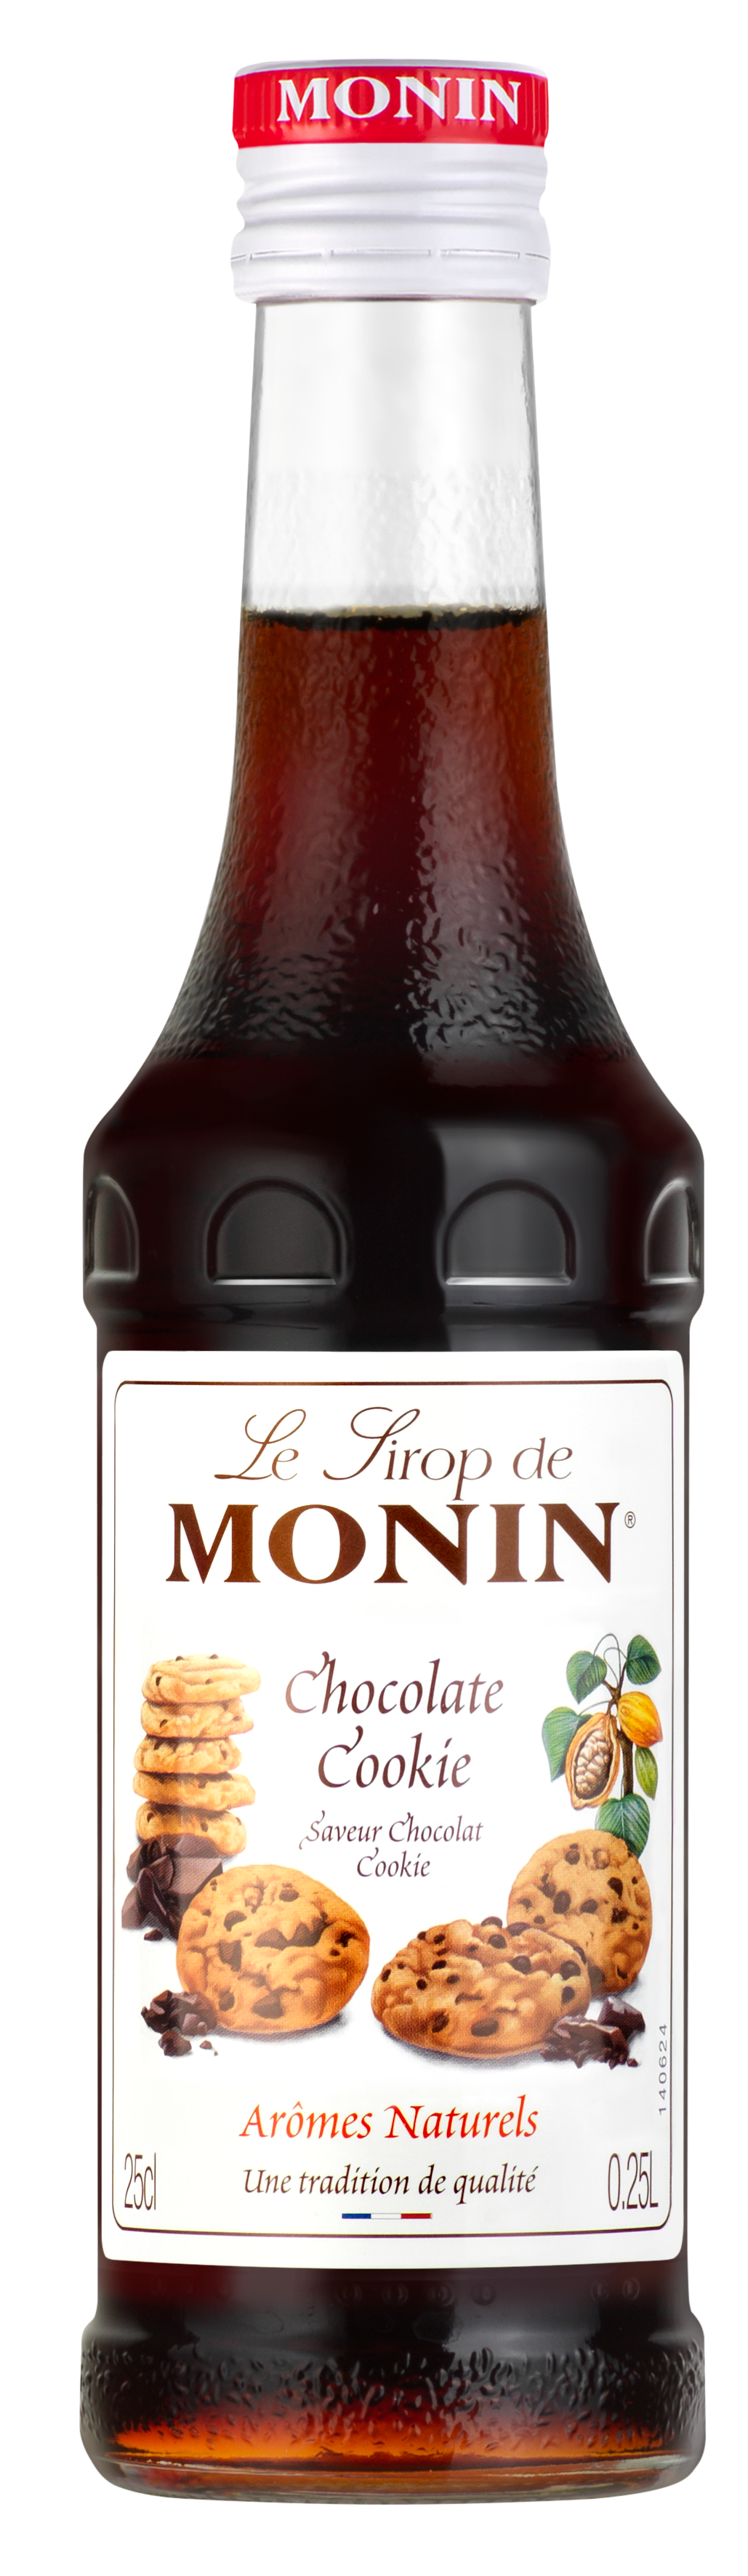 Sirop saveur Chocolat Cookie, Monin (25 cl)